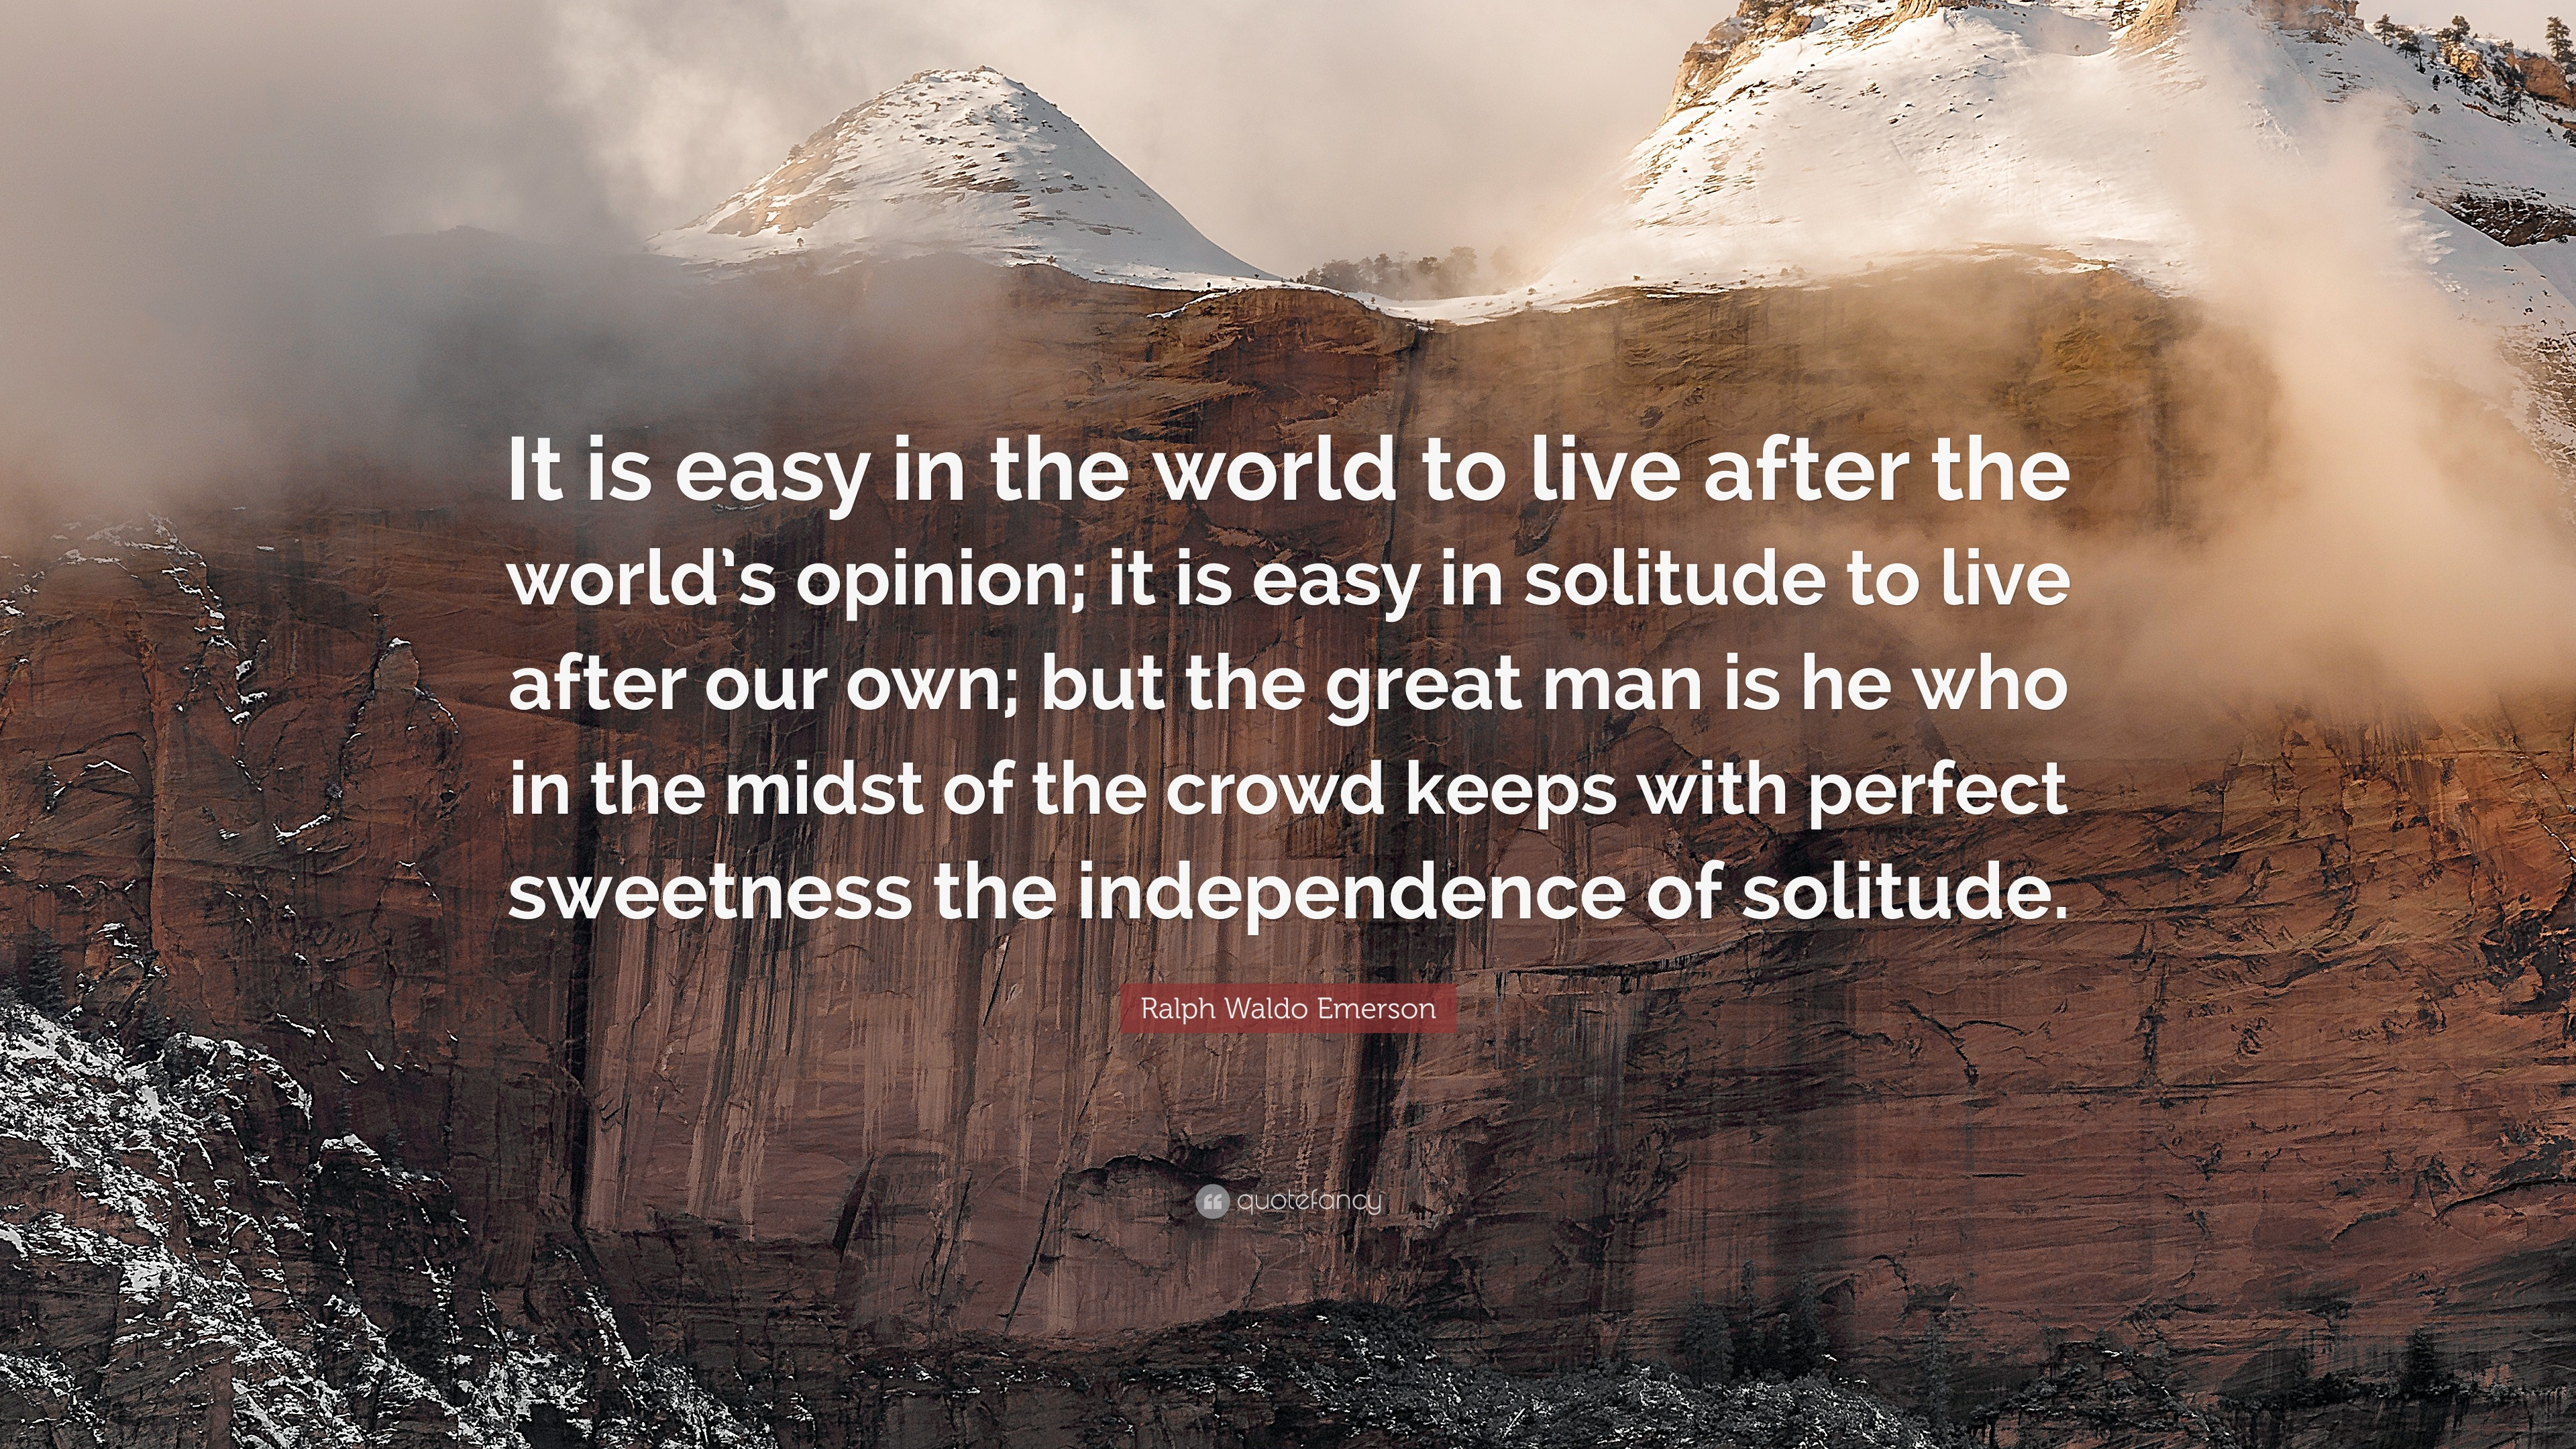 Make Own Quote Wallpaper Ralph Waldo Emerson Quote It Is Easy In The World To